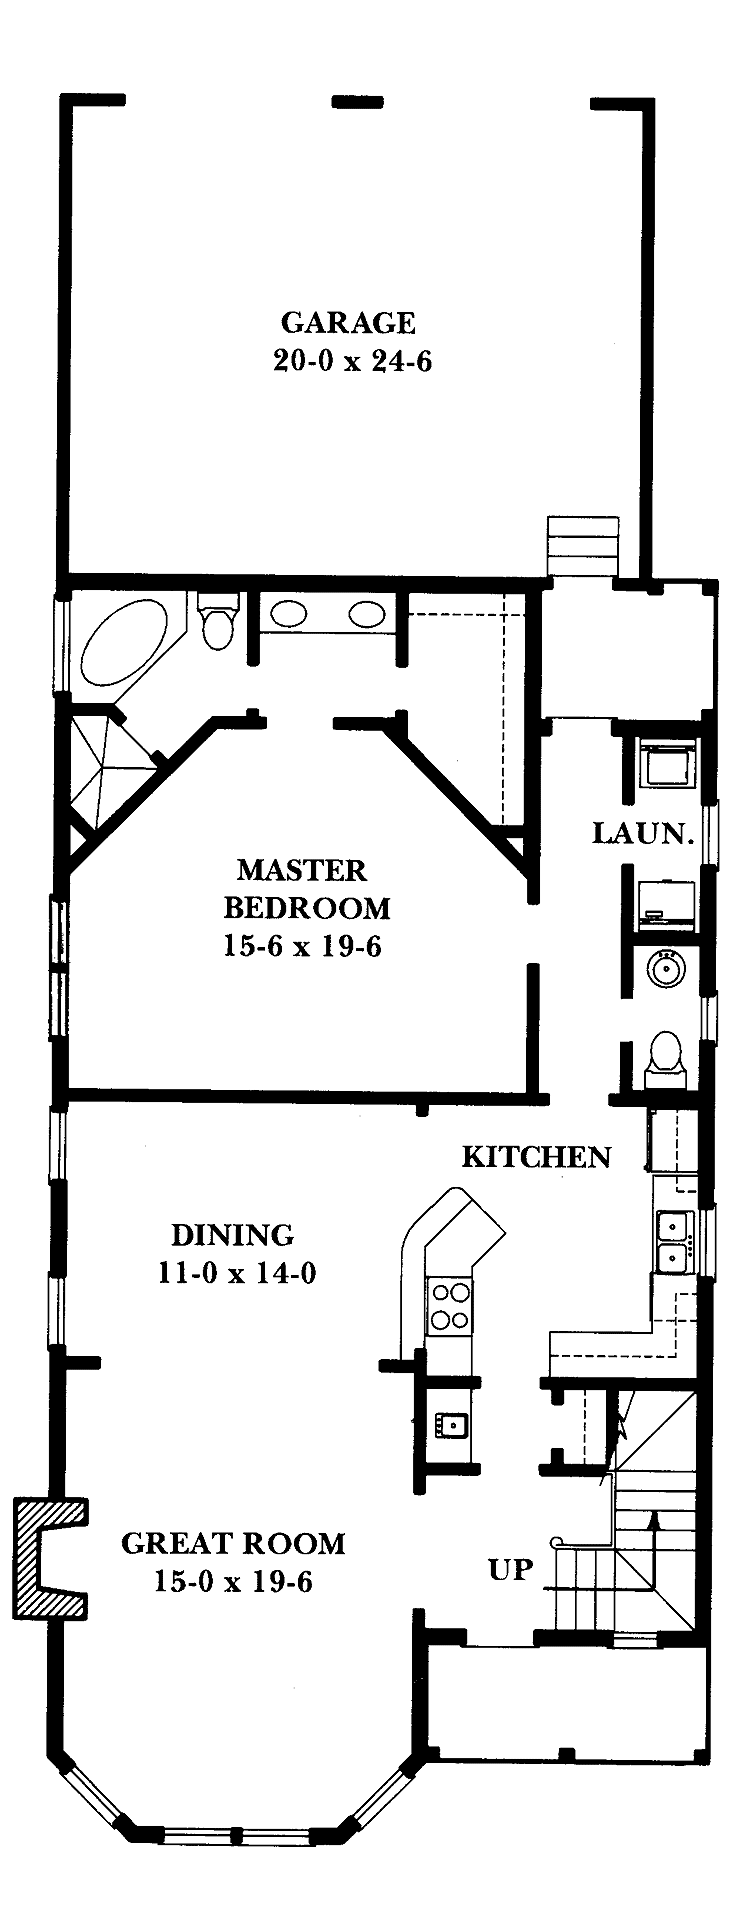 House designs house blueprints ex les on small house floor plans 1100